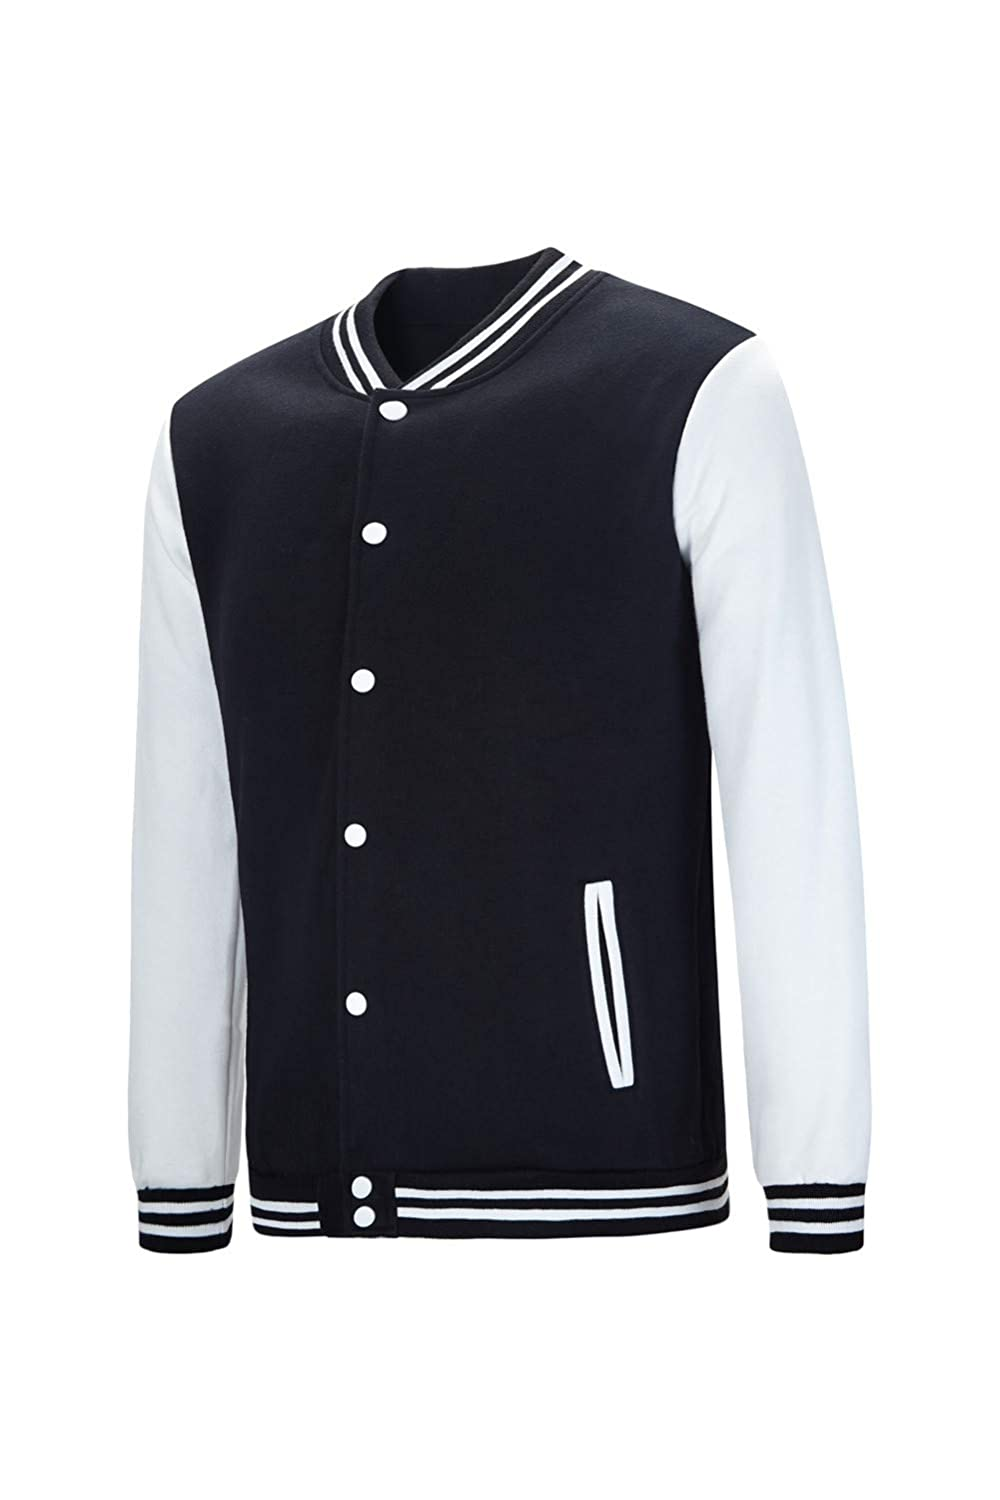 a231f1a6e9 TRIFUNESS Varsity Jacket Letterman Jacket Baseball Jacket with Long Sleeve  Banded Collar